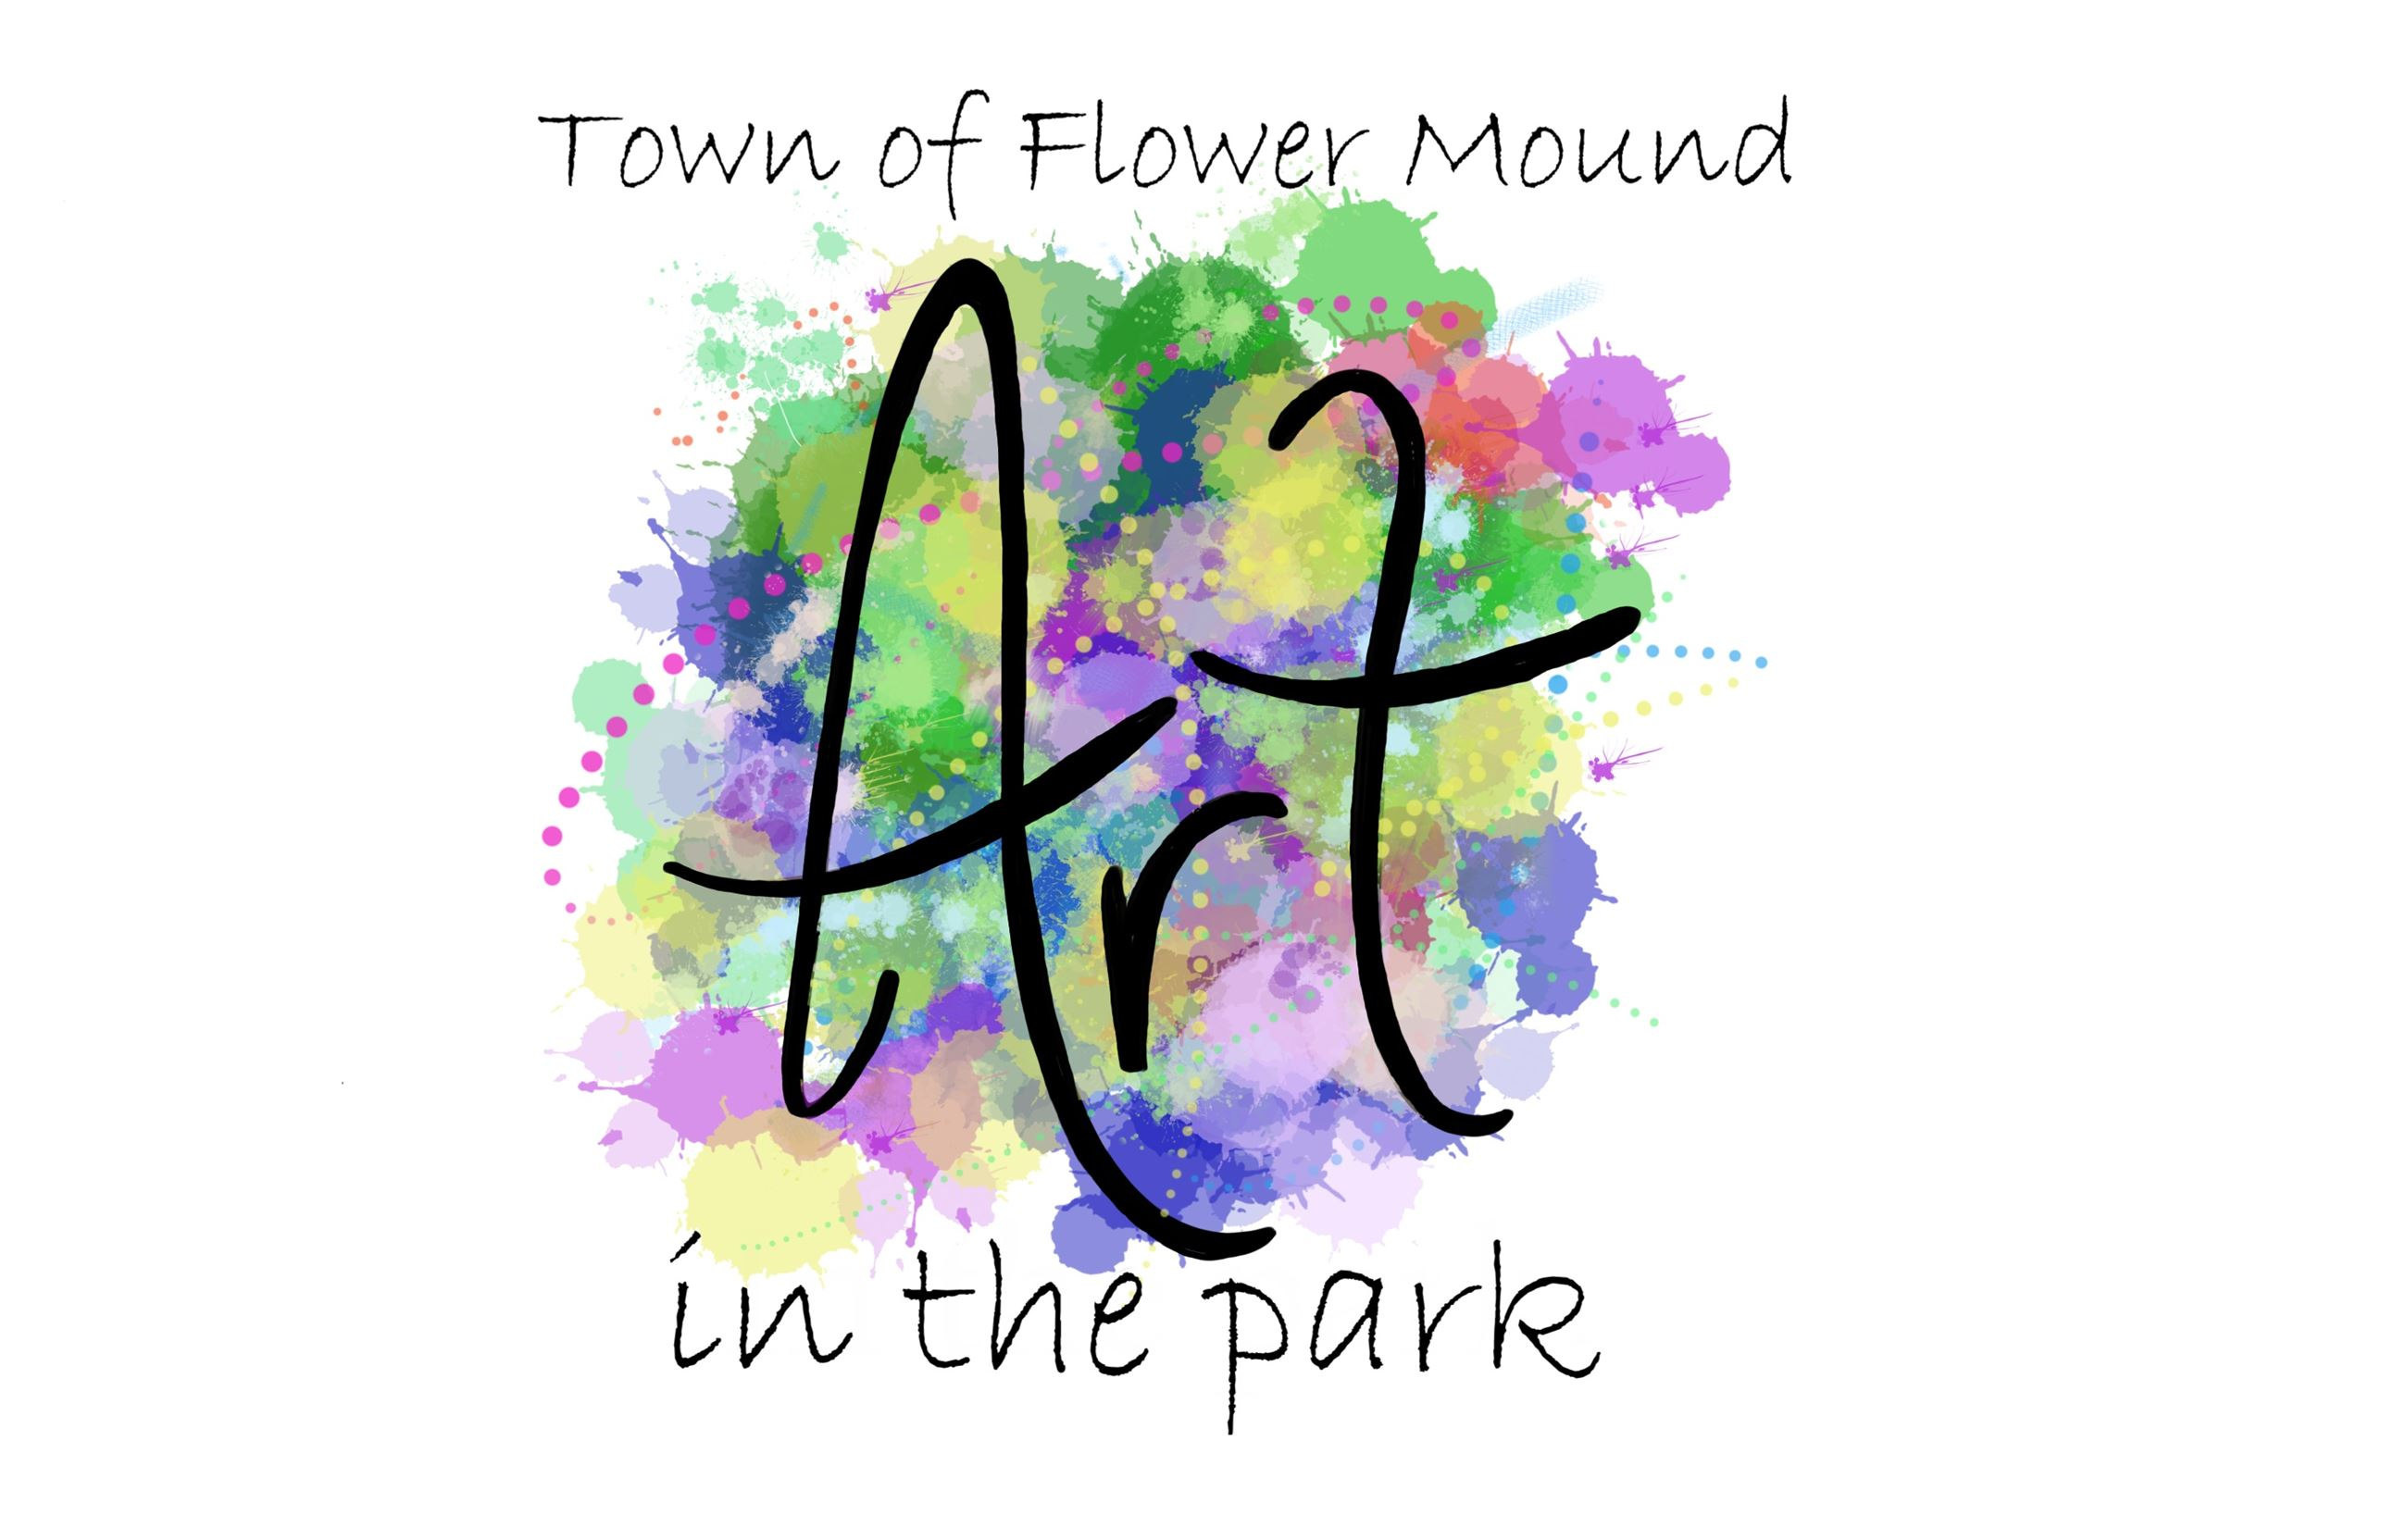 art in the park logo TOFM